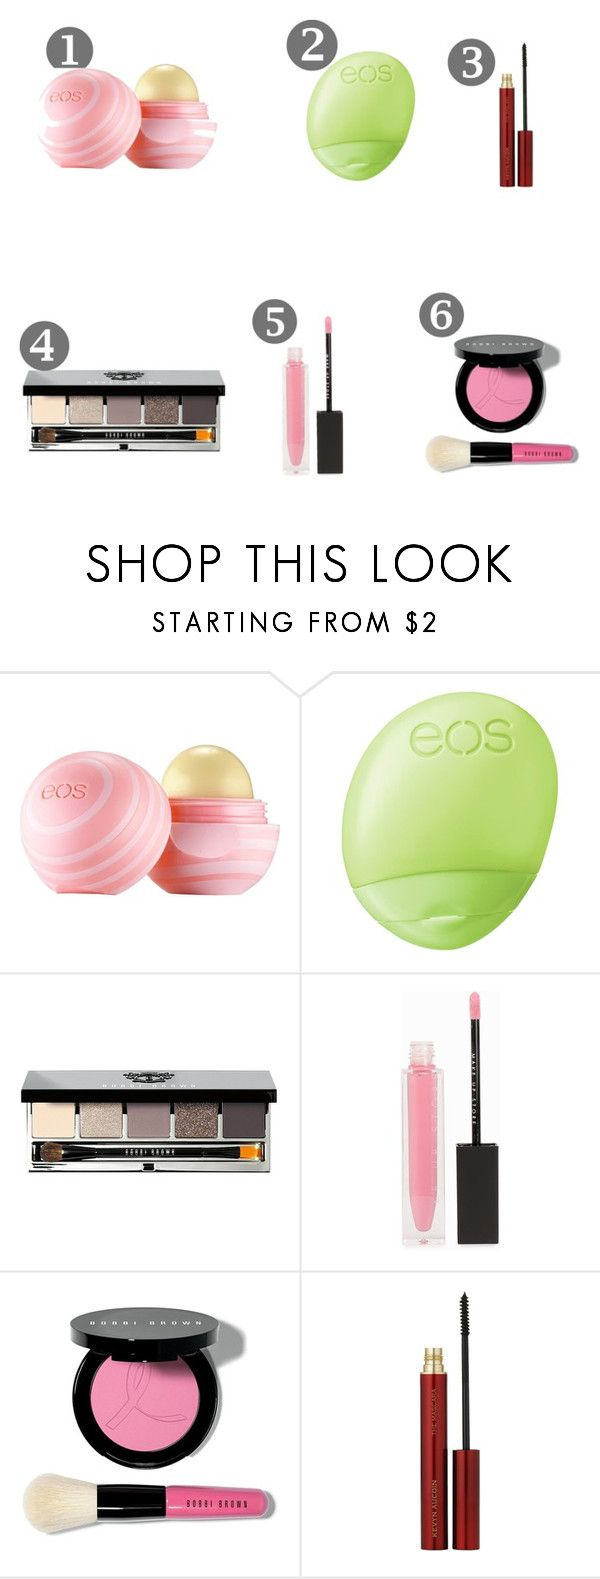 """Santa's wish list 3"" by sofiaidaanneli98 on Polyvore featuring beauty, Eos, Bobbi Brown Cosmetics, MAKE UP STORE and Kevyn Aucoin"